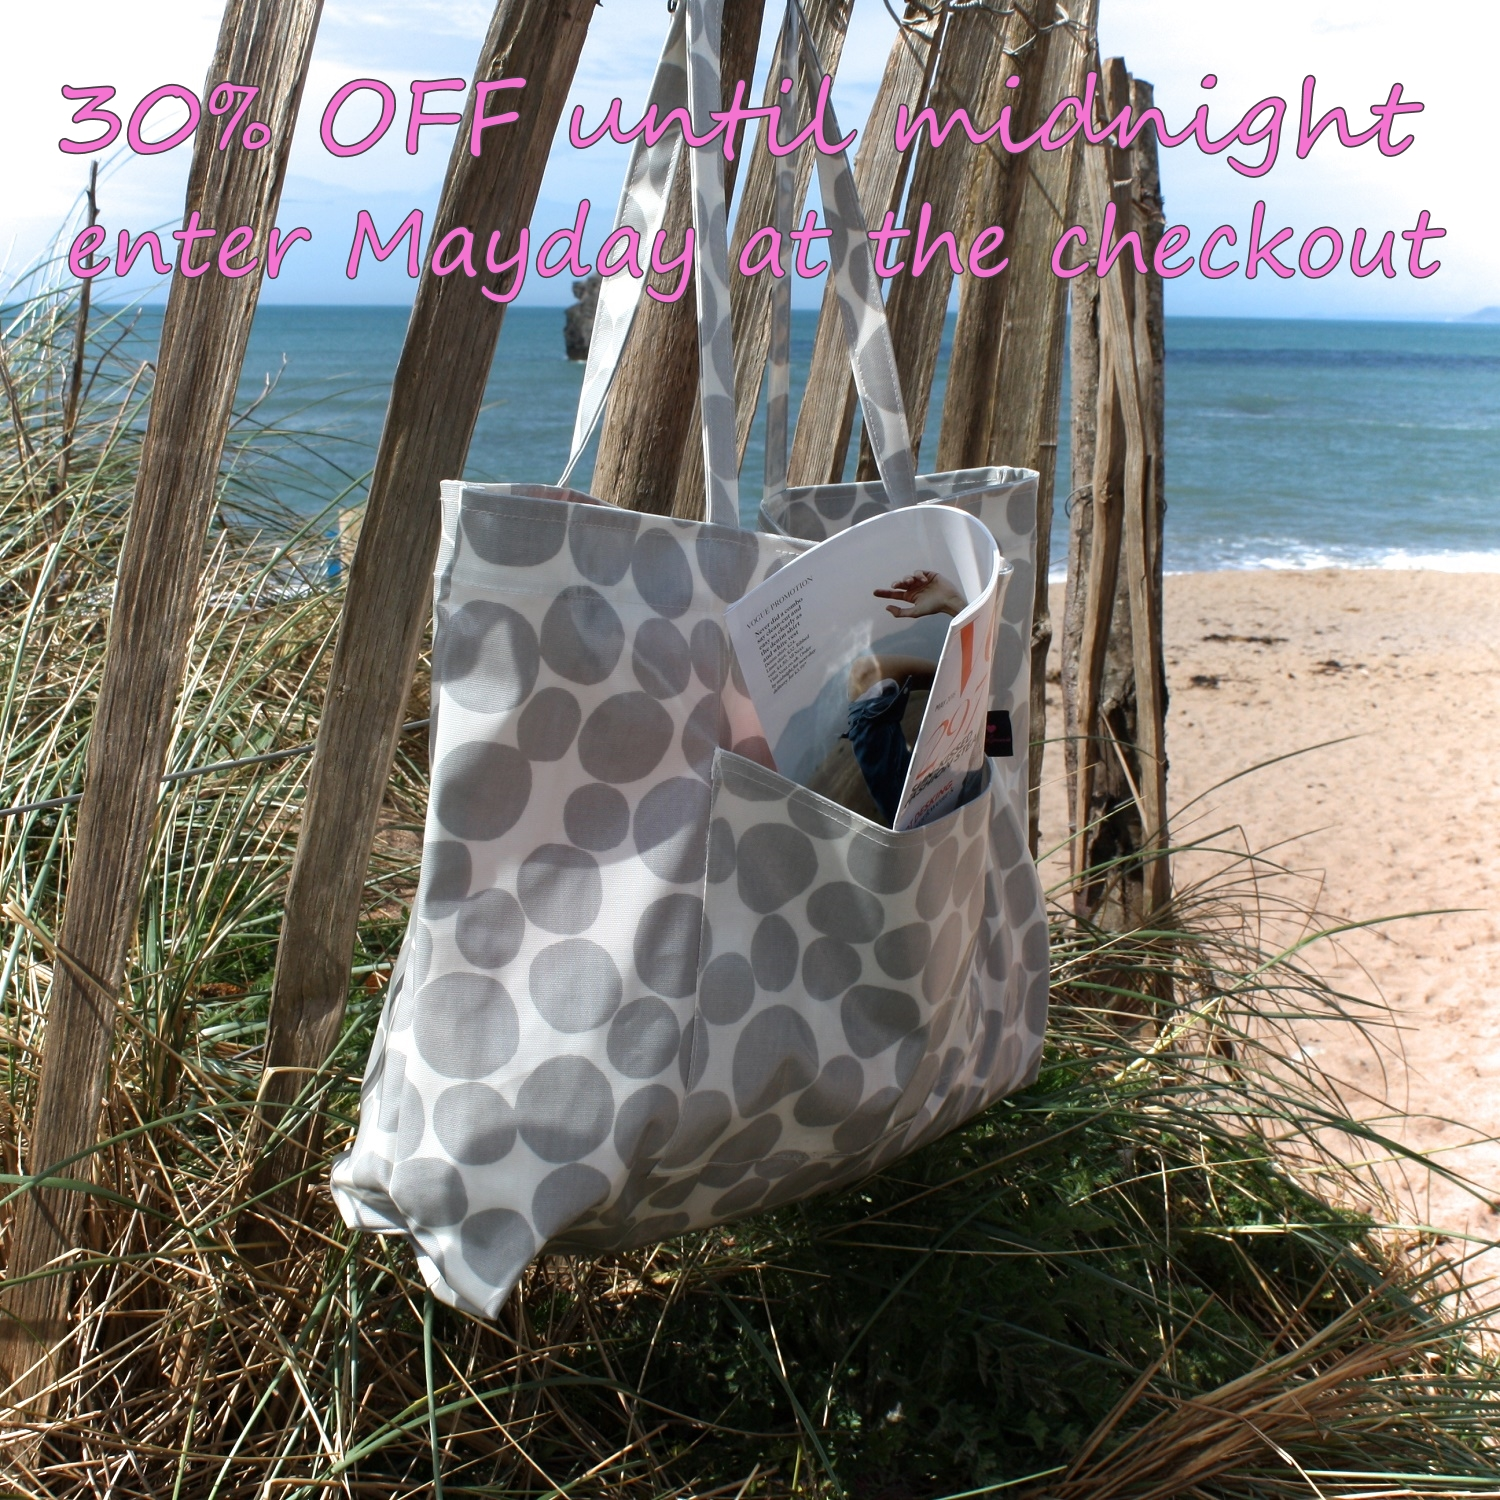 30% OFF Bank Holiday Special